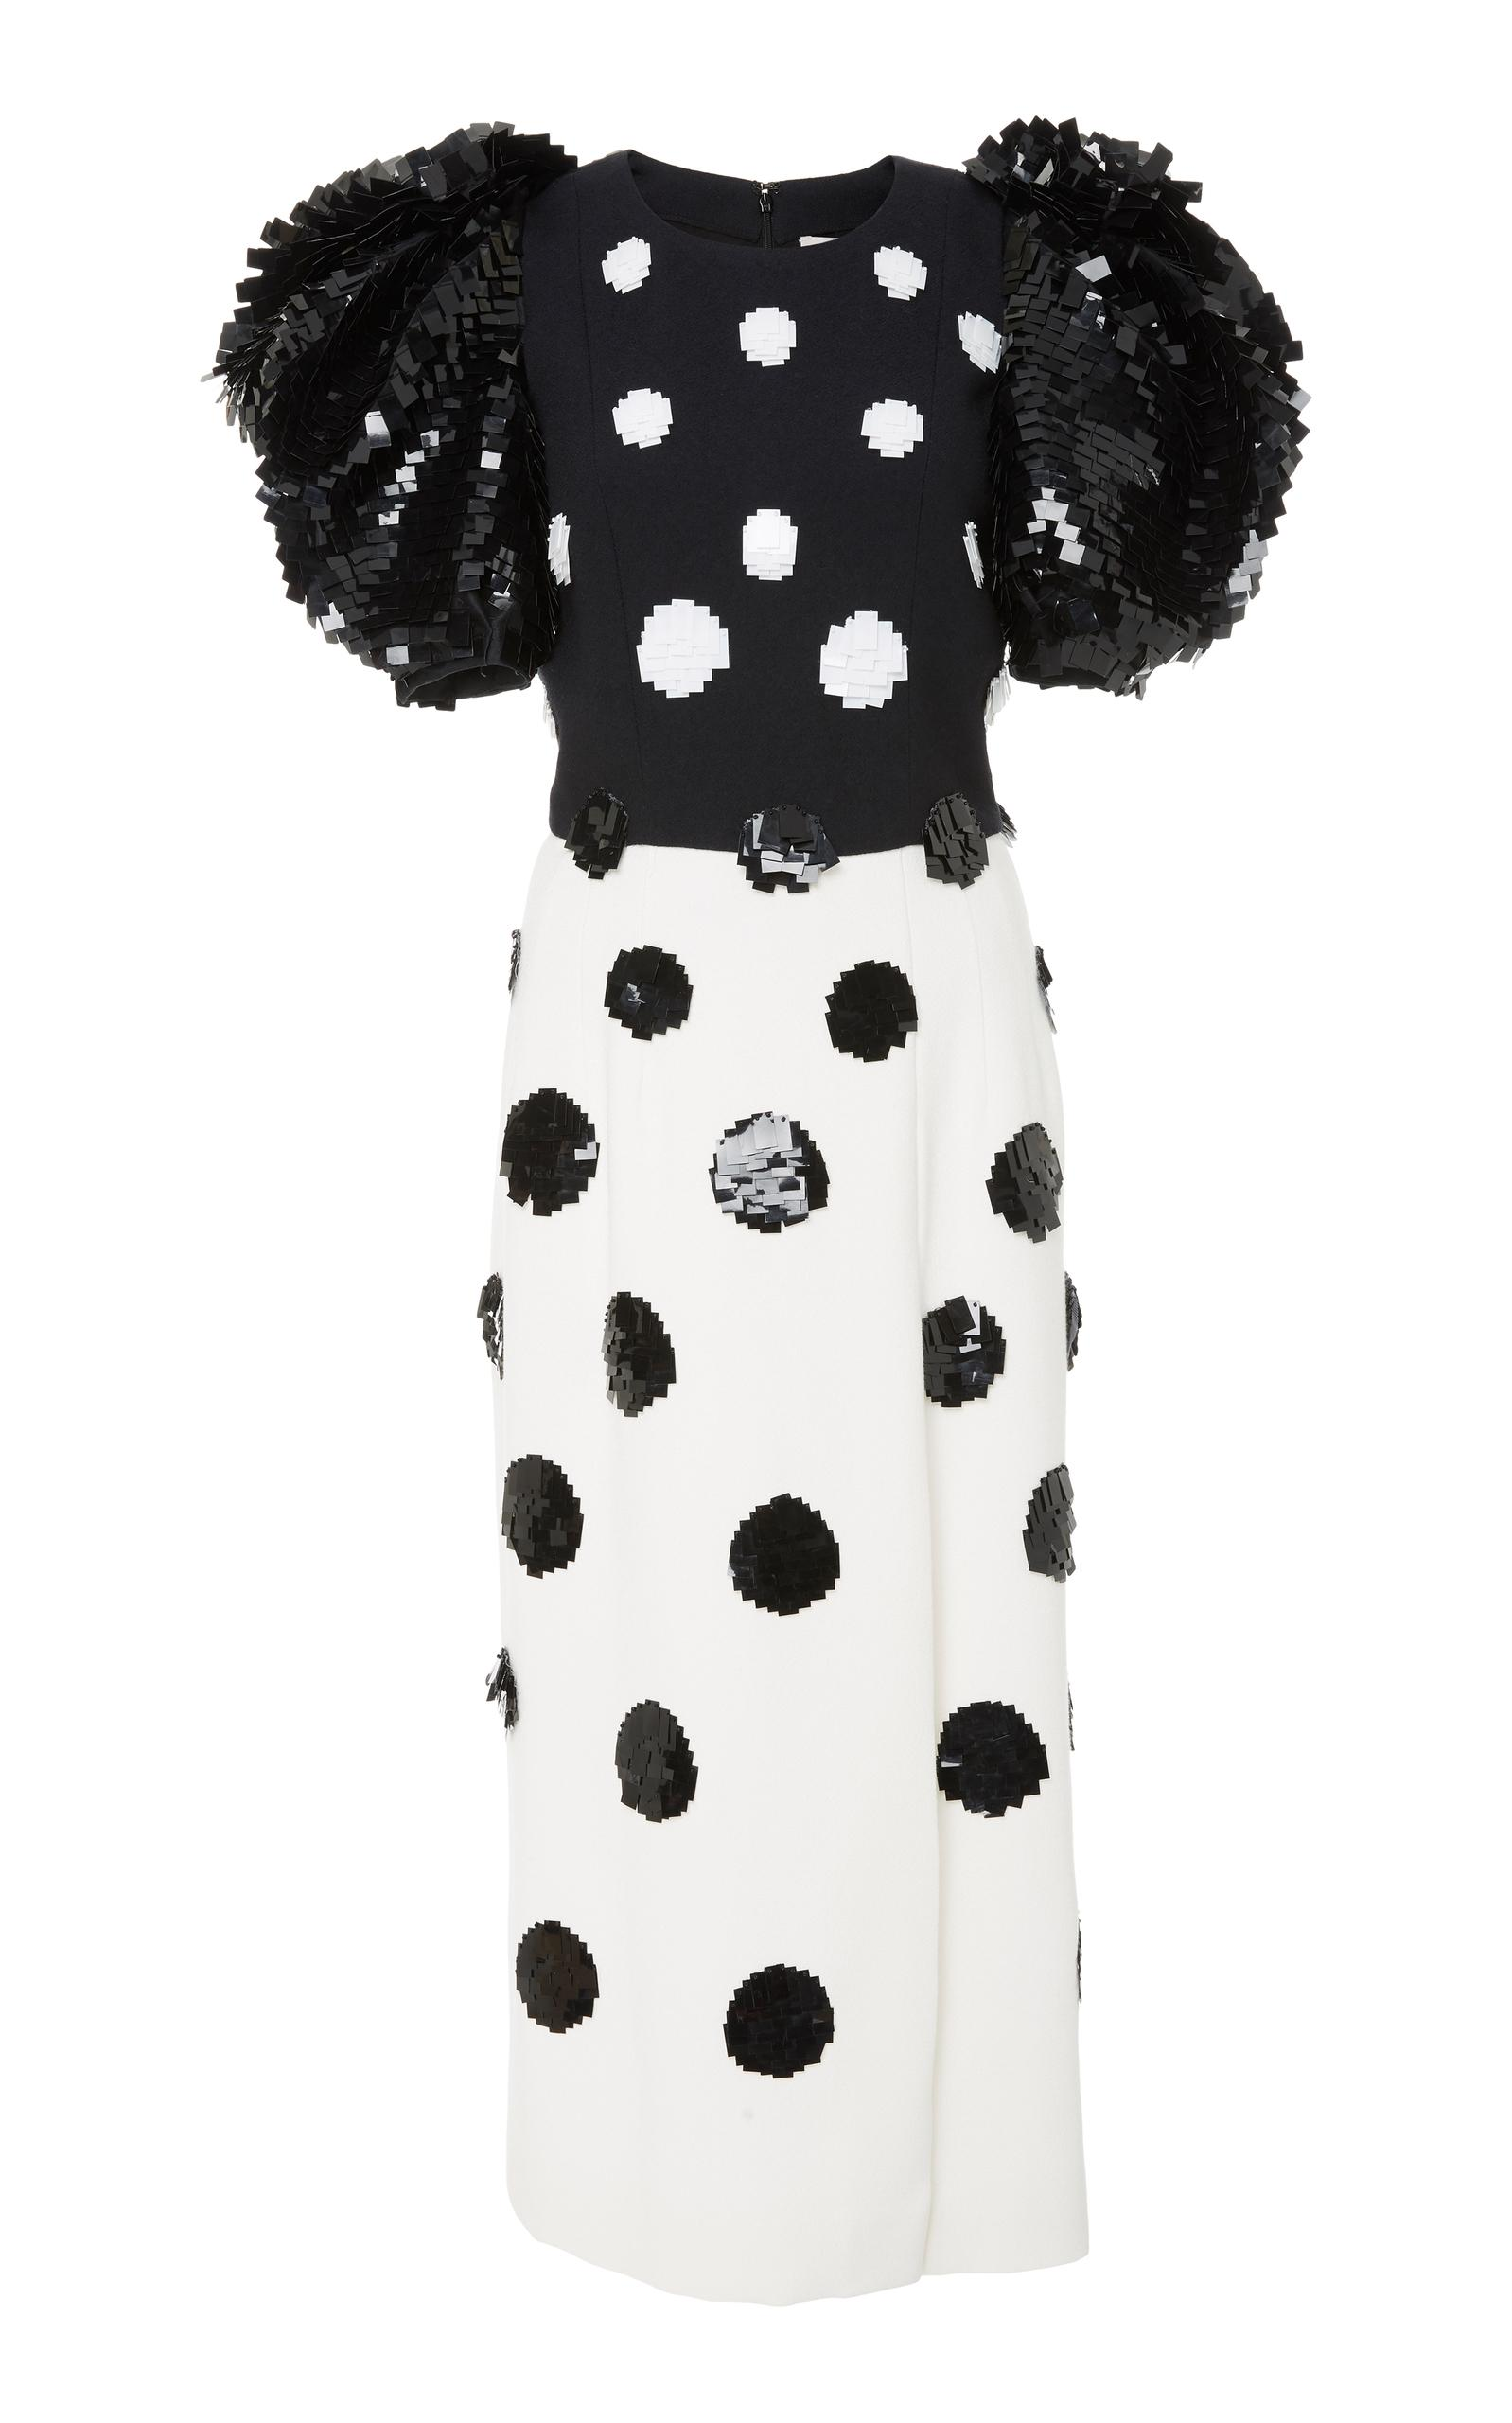 d83958541817b Carolina Herrera Short Puff-Sleeve Fitted Dotted Cocktail Dress In  Black White